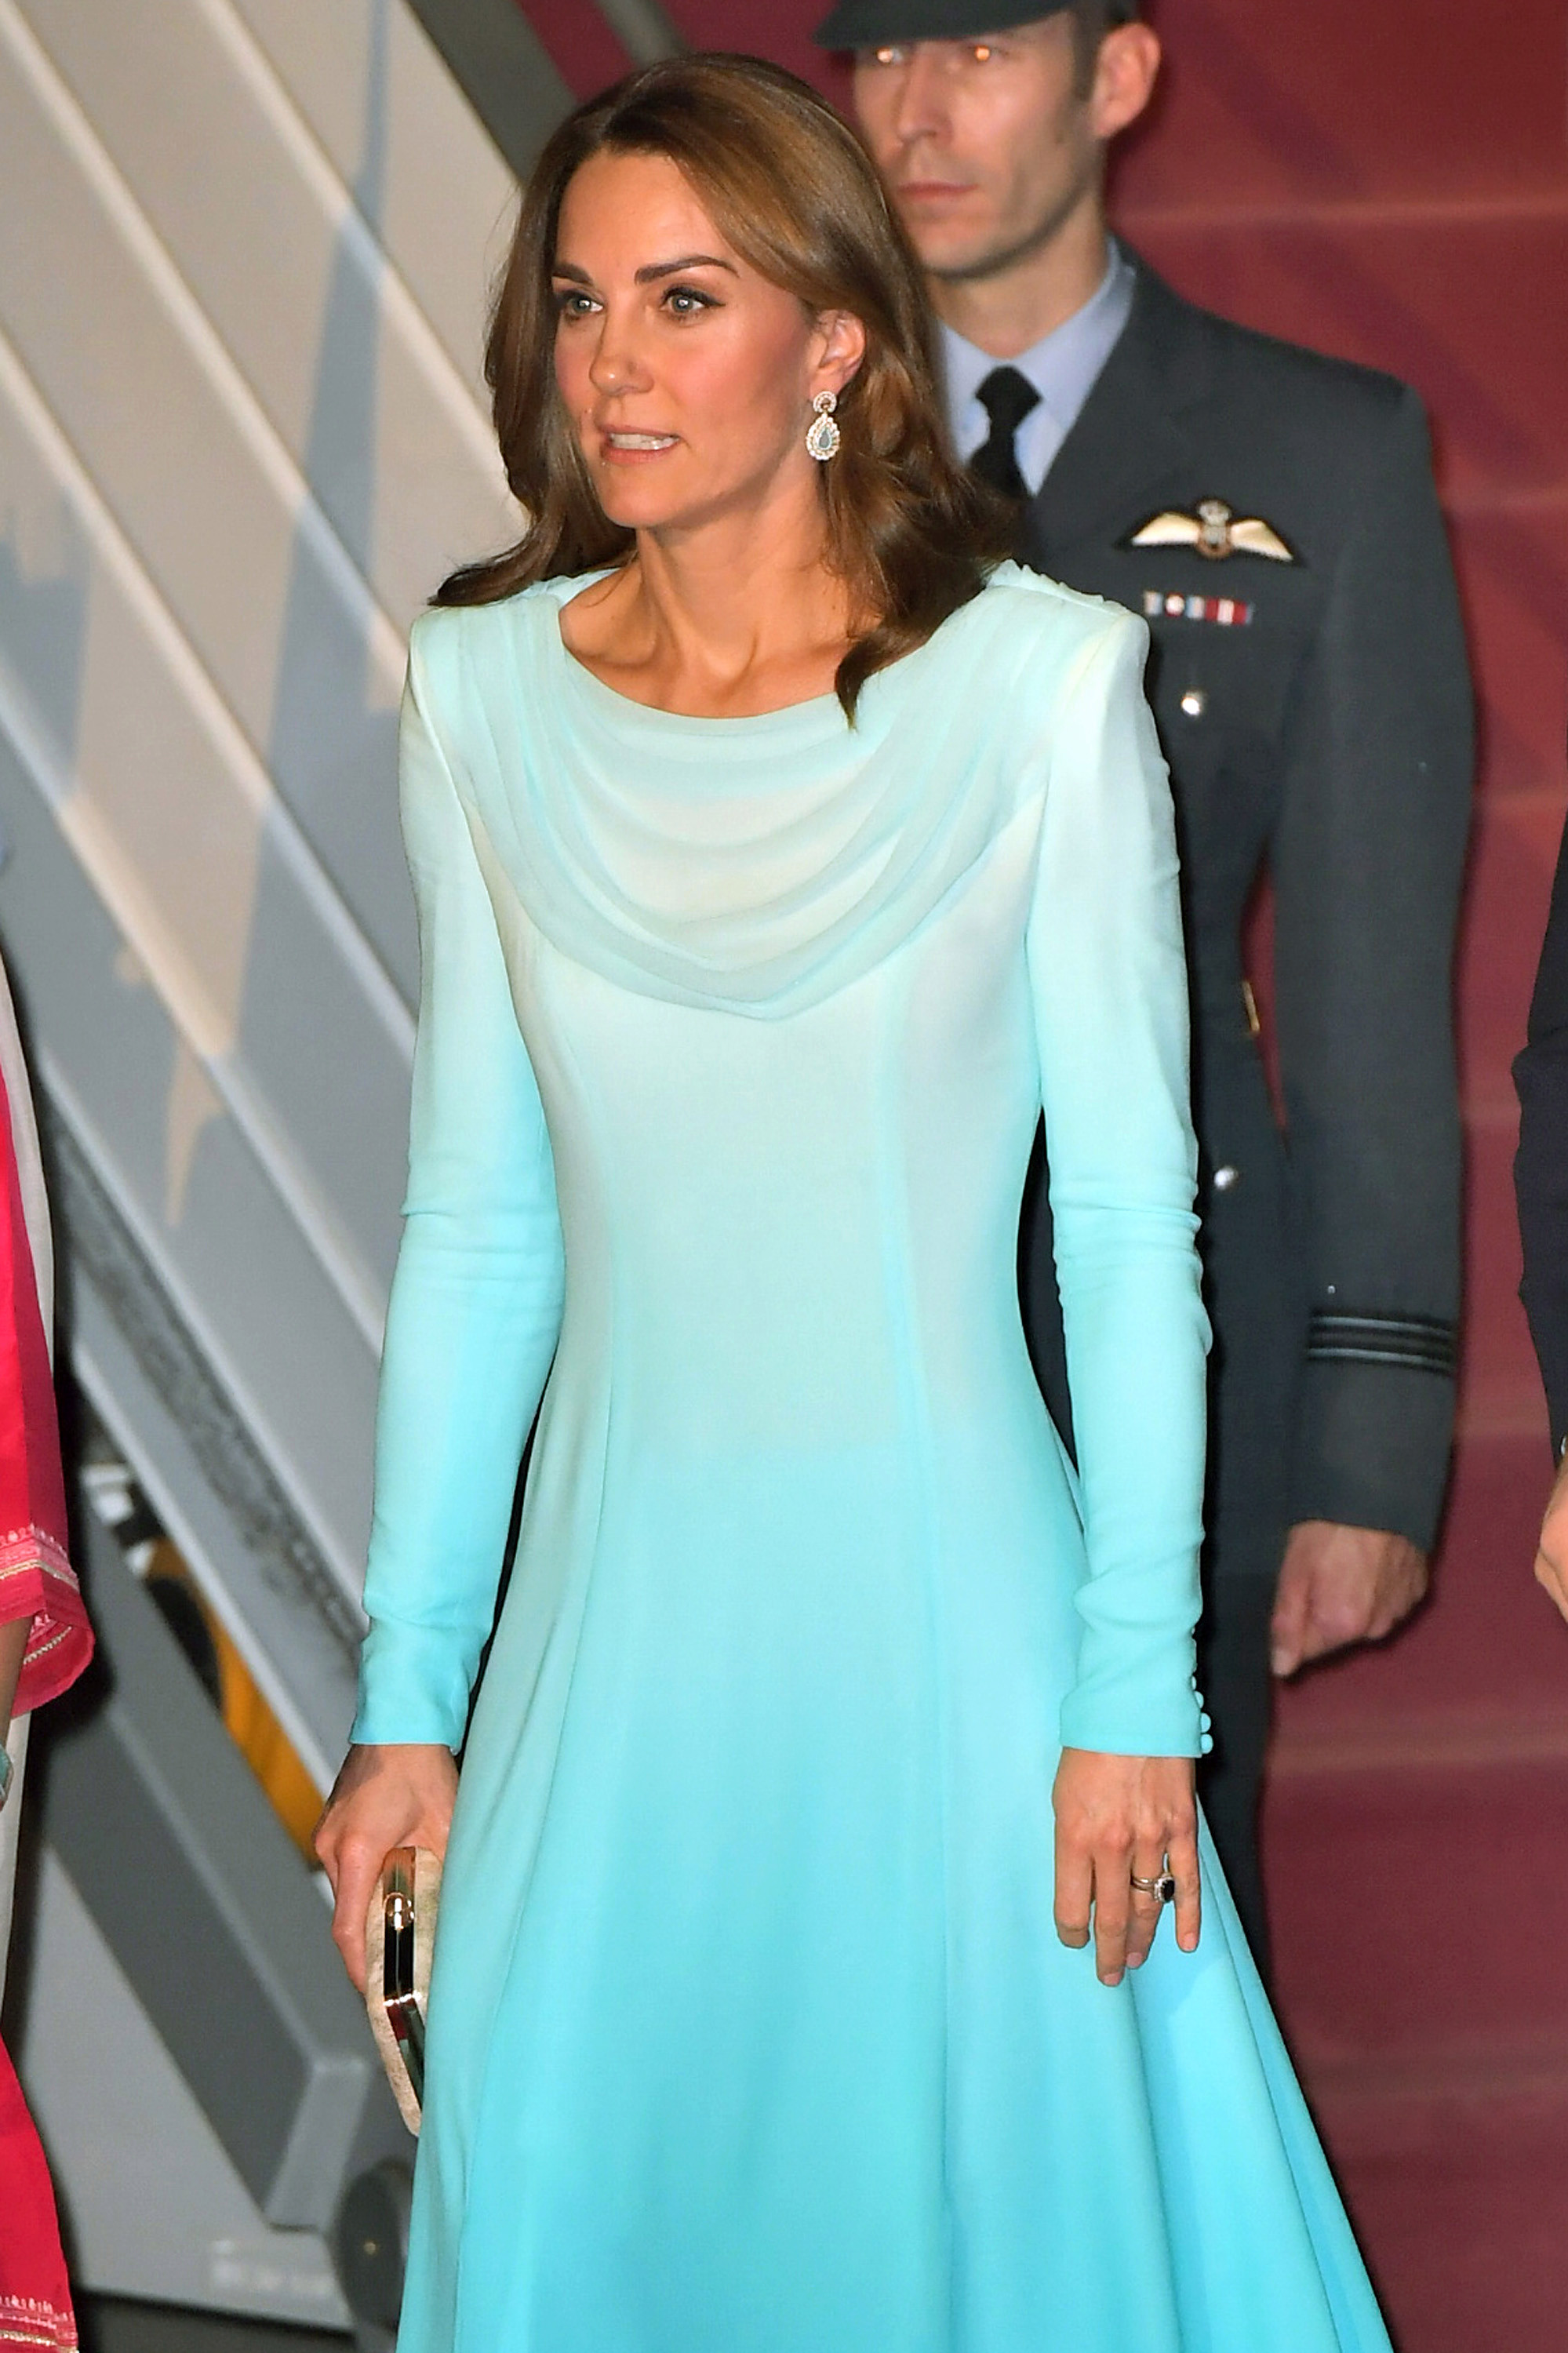 The duchess looked elegant in an aqua shalwar kameez - seen as a nod to local tradition